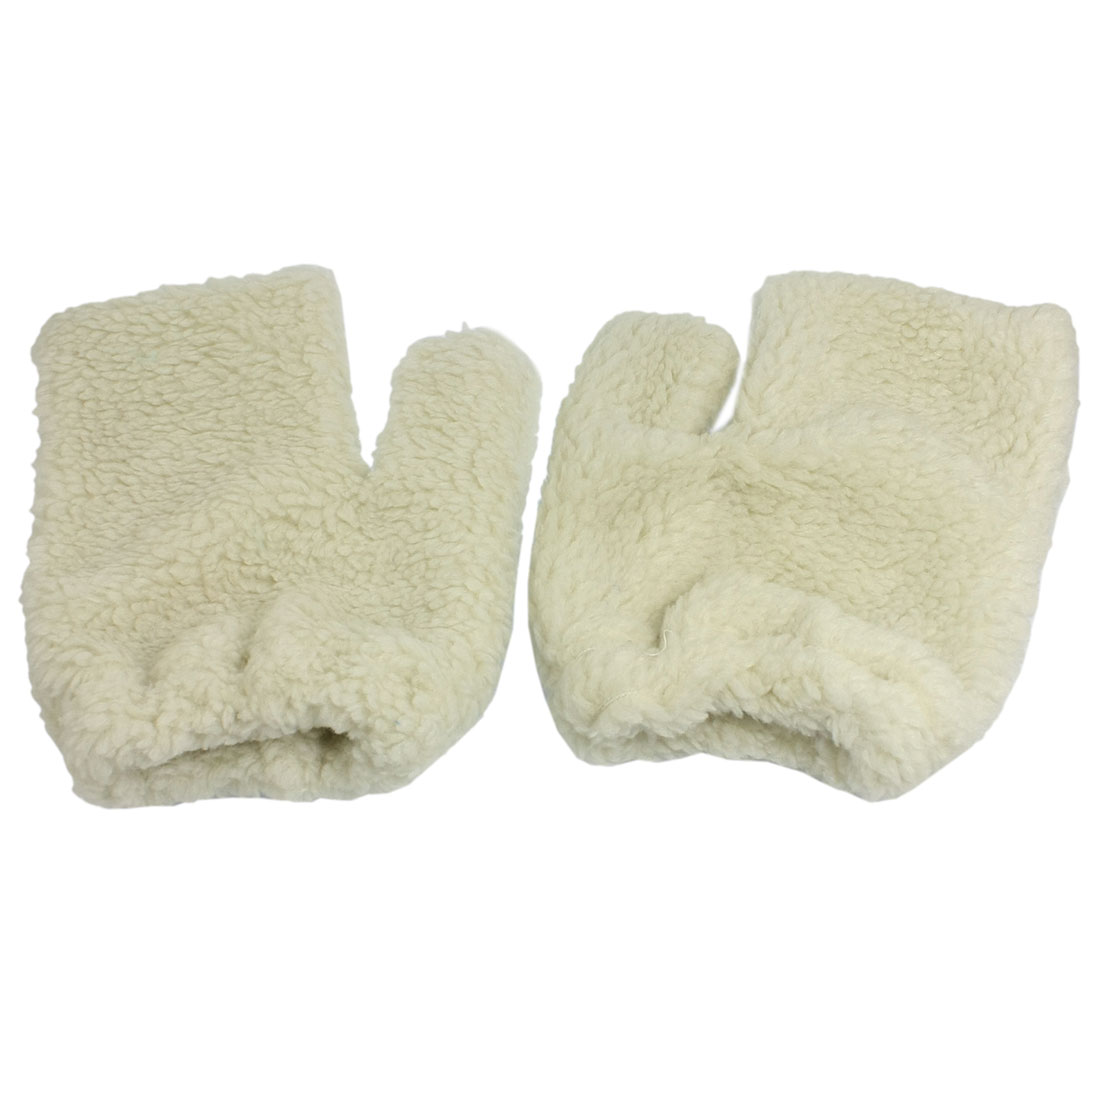 White Plush Hand Shape Car Auto Washing Cleaning Mitt Glove